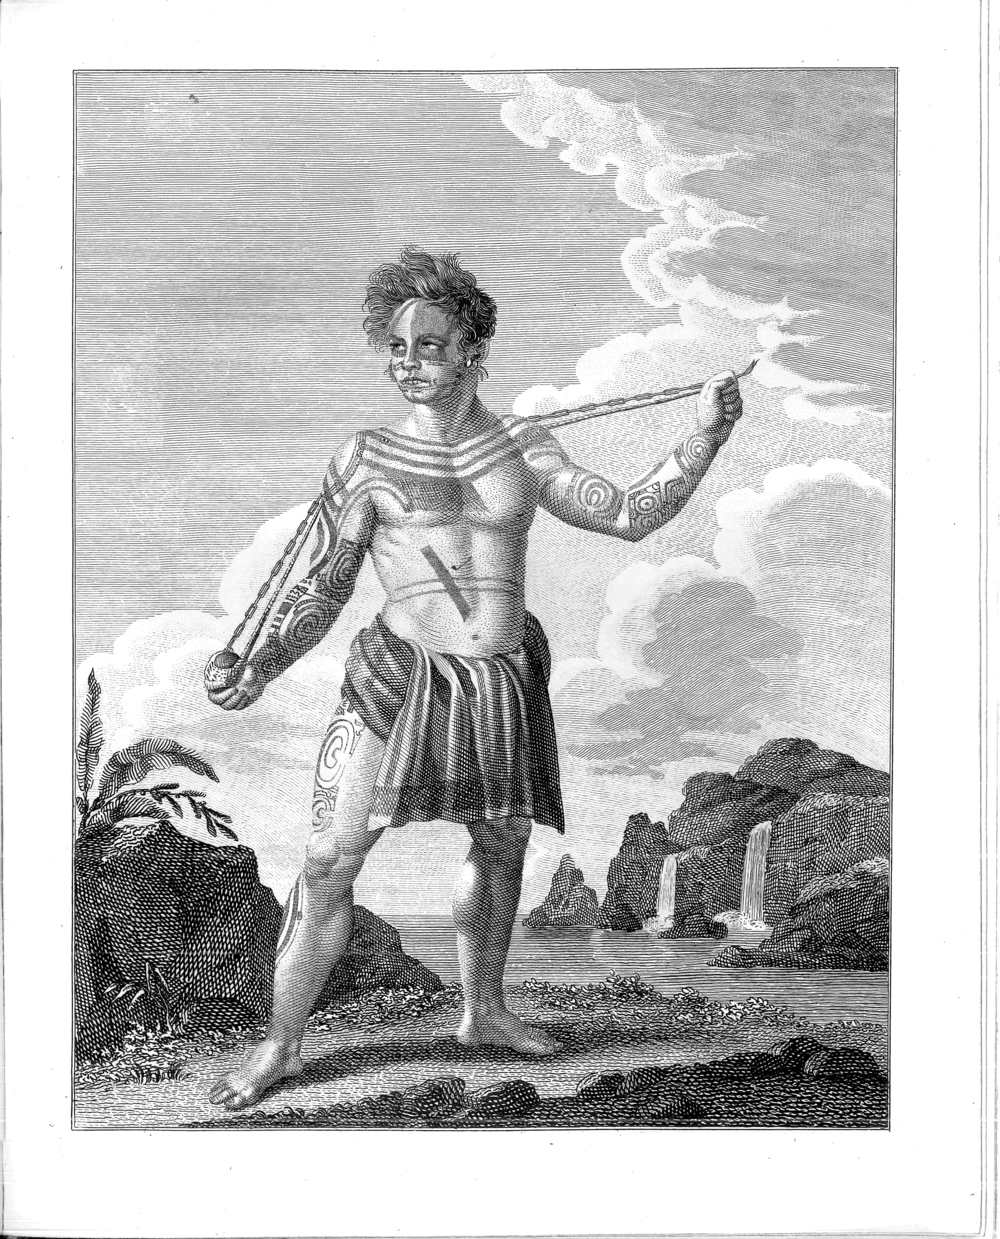 Portrait of the Frenchman, Jean Baptiste Cabri, found on the island of Nukahiwa, presented as a slingshot wielder, engraved by Orlovsky, from GH v. Langsdorff's remarks on a journey around the world, 1812